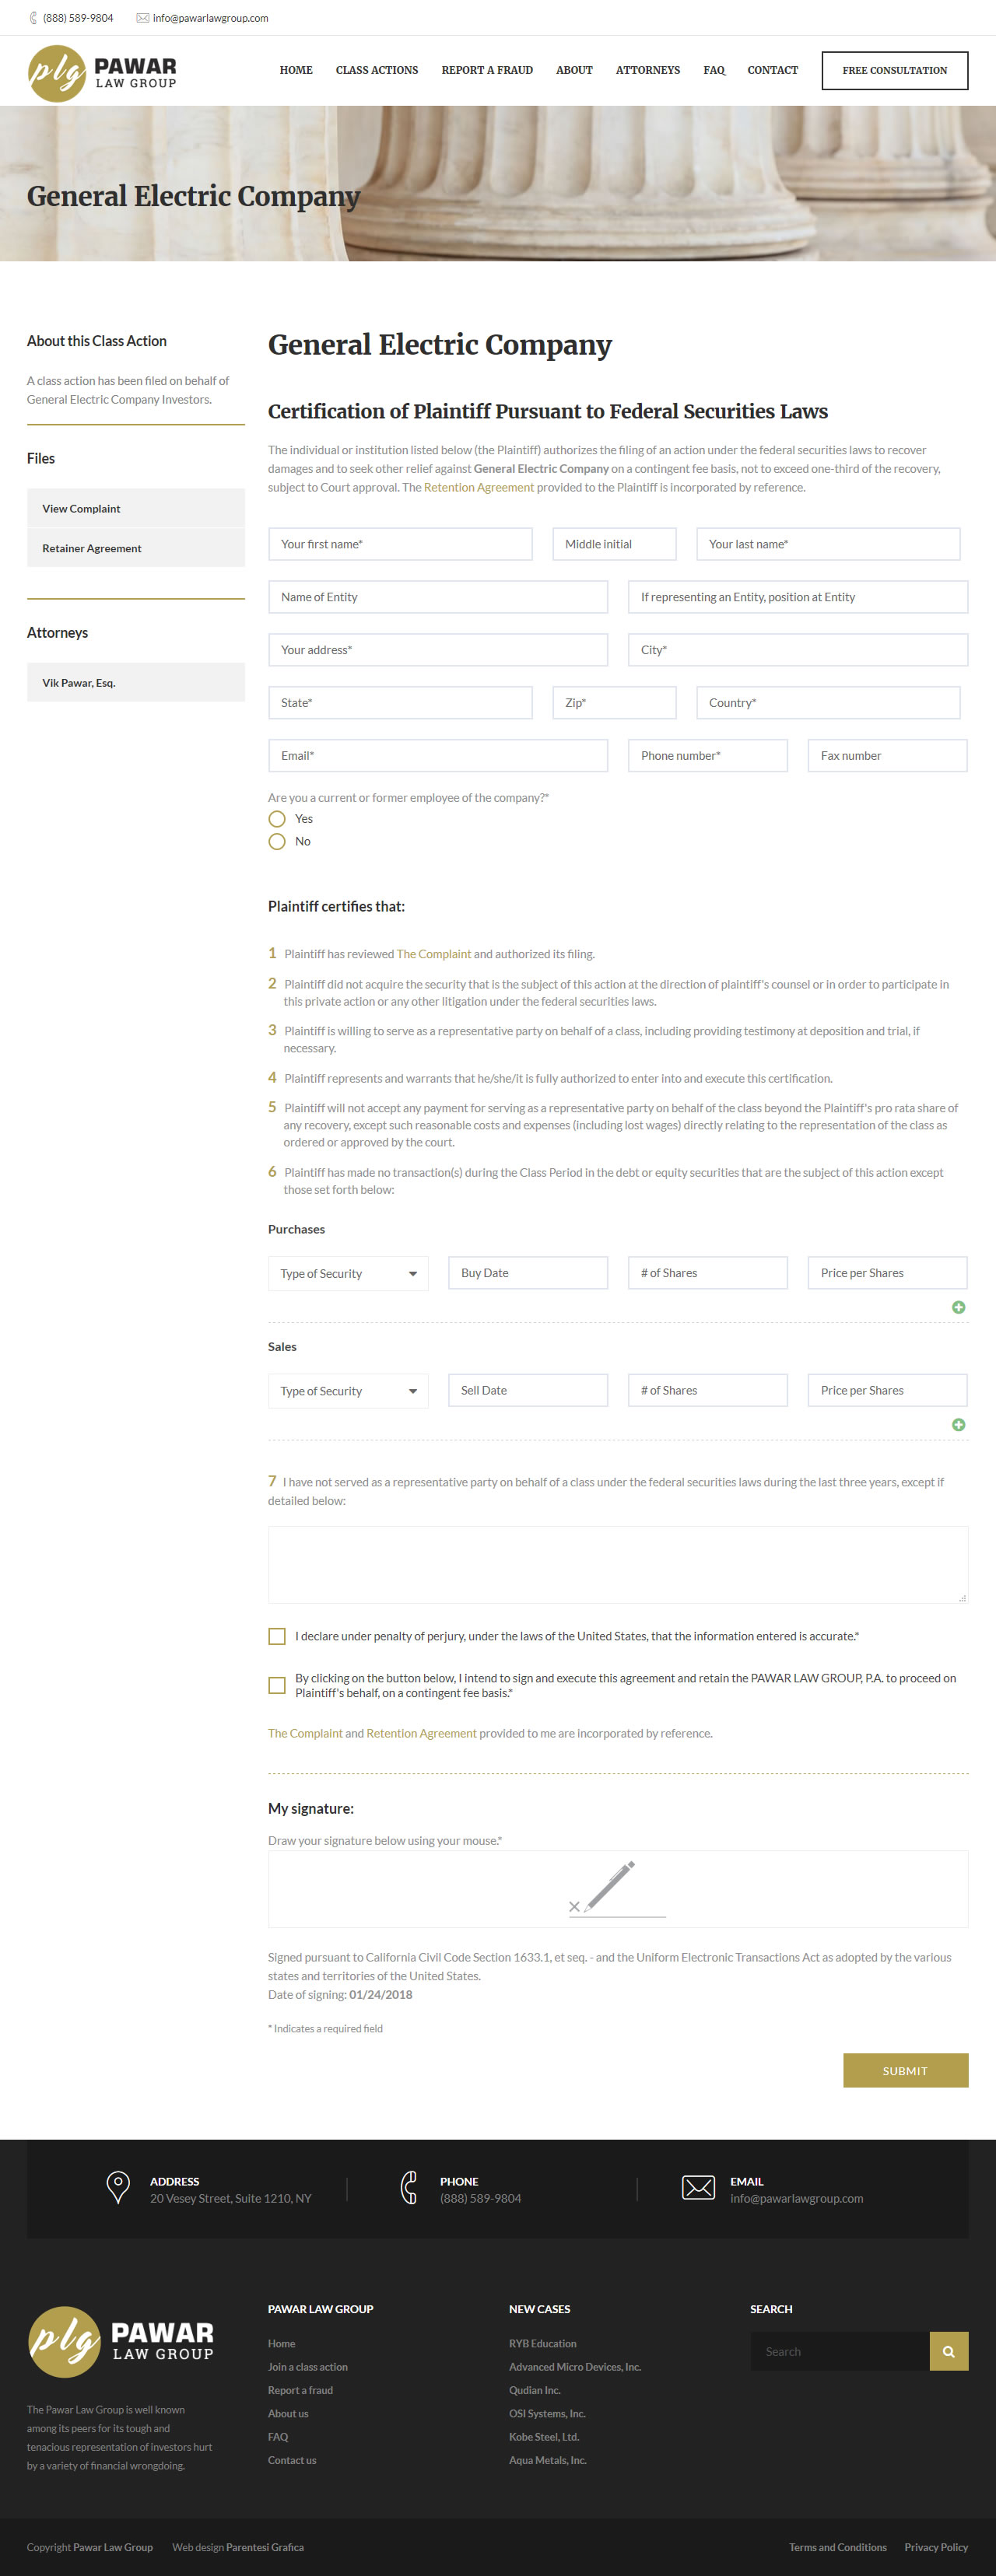 Pawar Law Group - join class action form